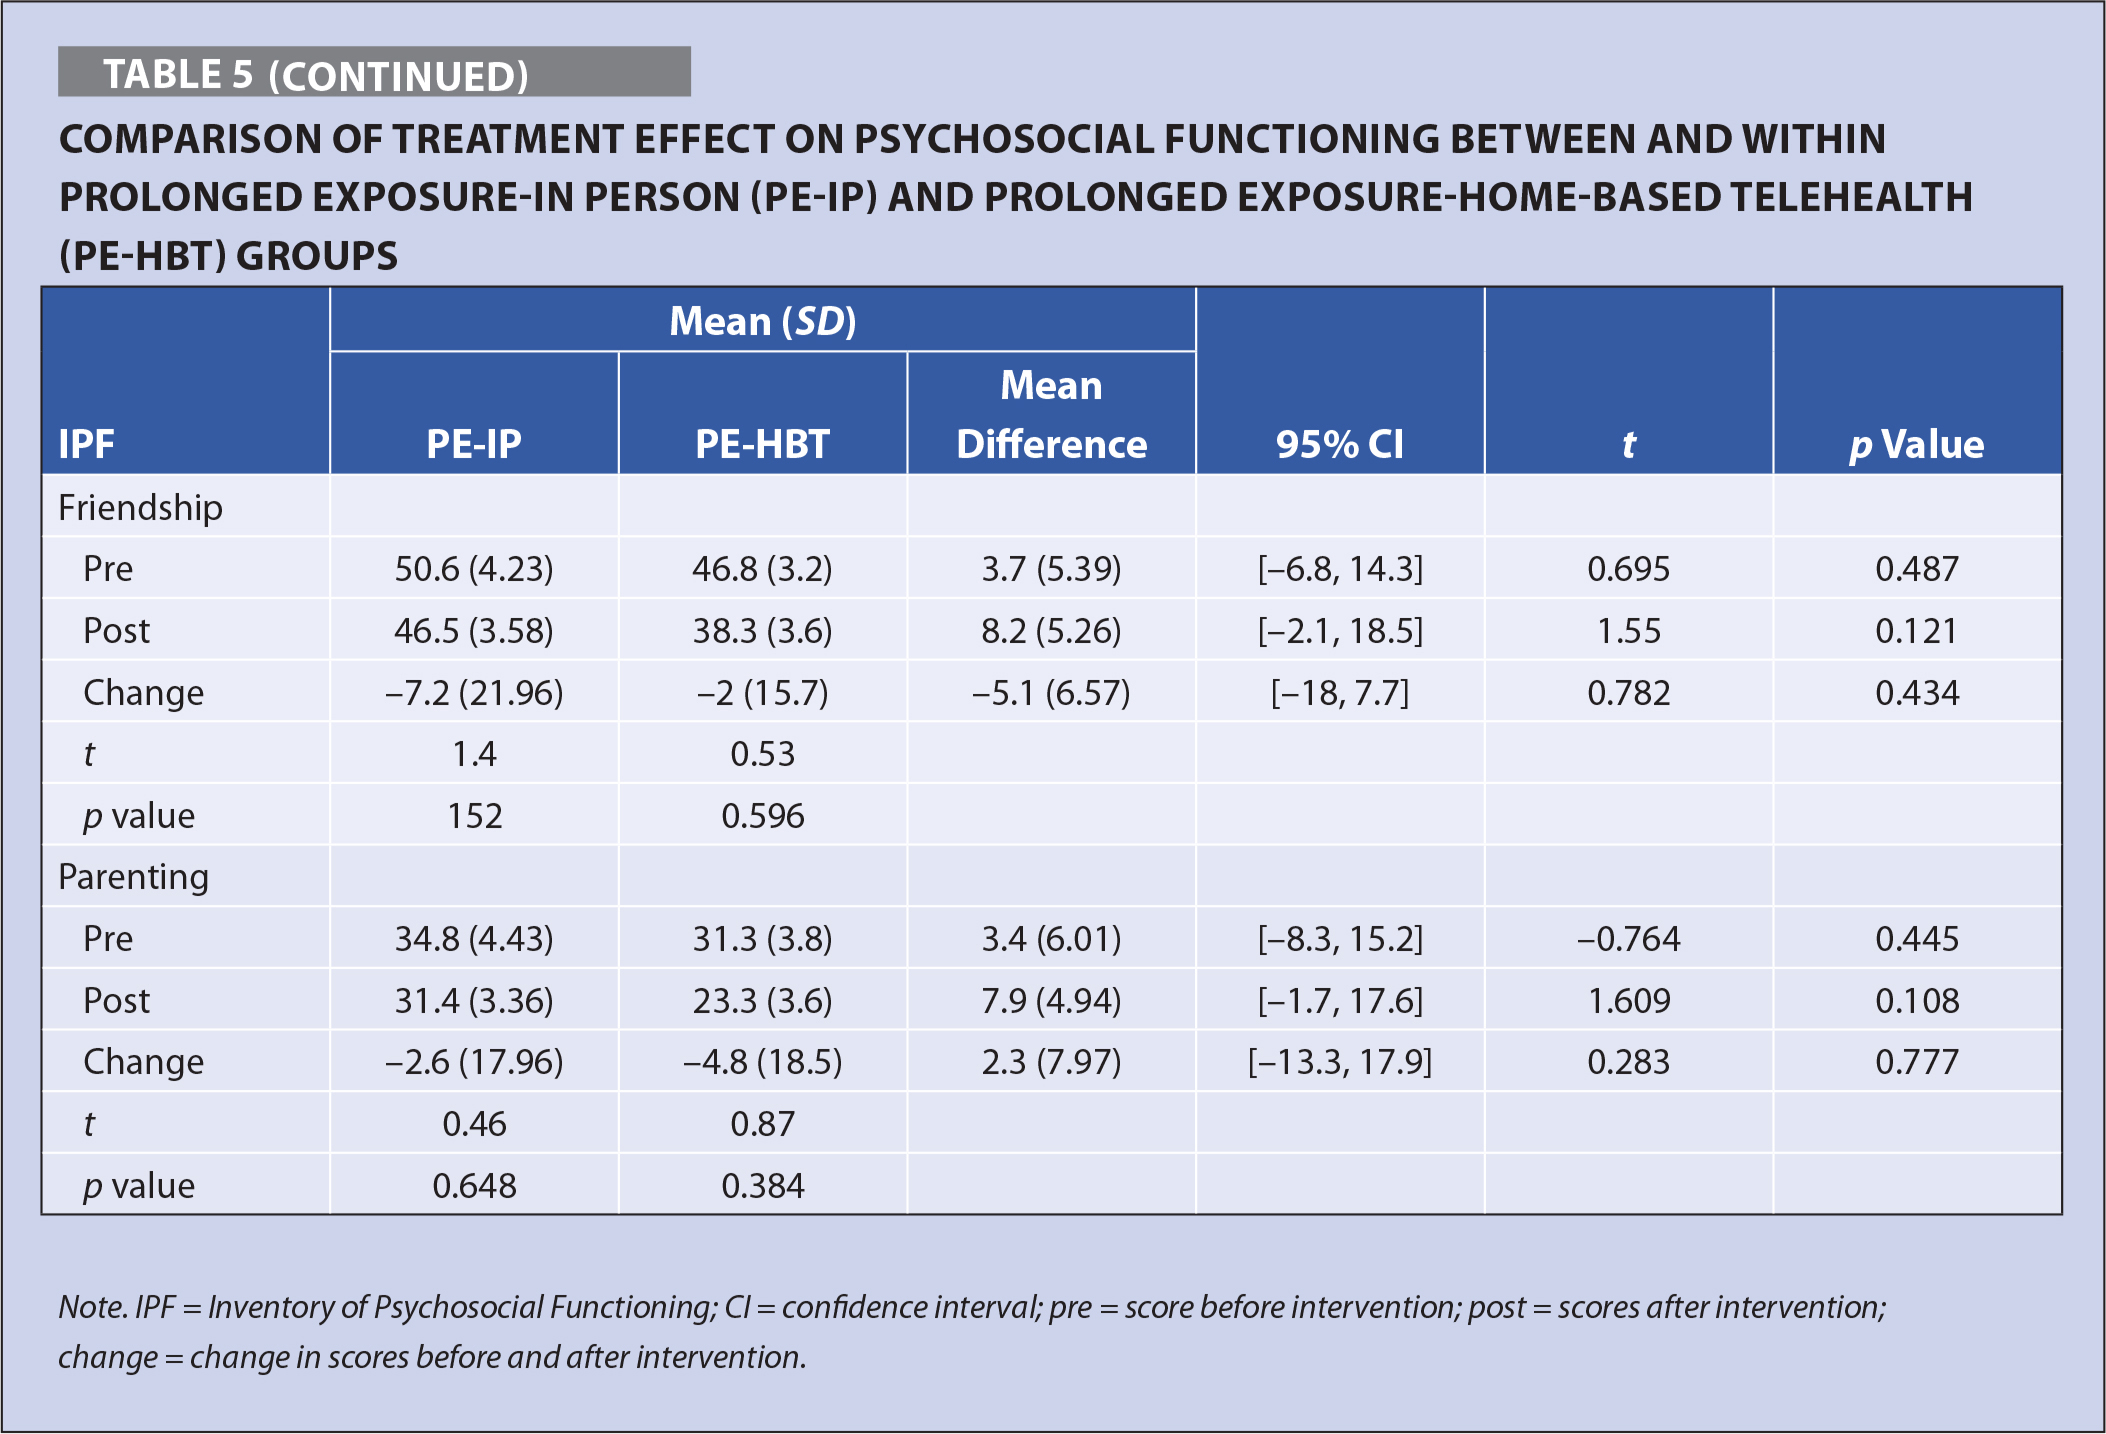 Comparison of Treatment Effect on Psychosocial Functioning Between and Within Prolonged Exposure-In Person (PE-IP) and Prolonged Exposure-Home-Based Telehealth (PE-HBT) Groups